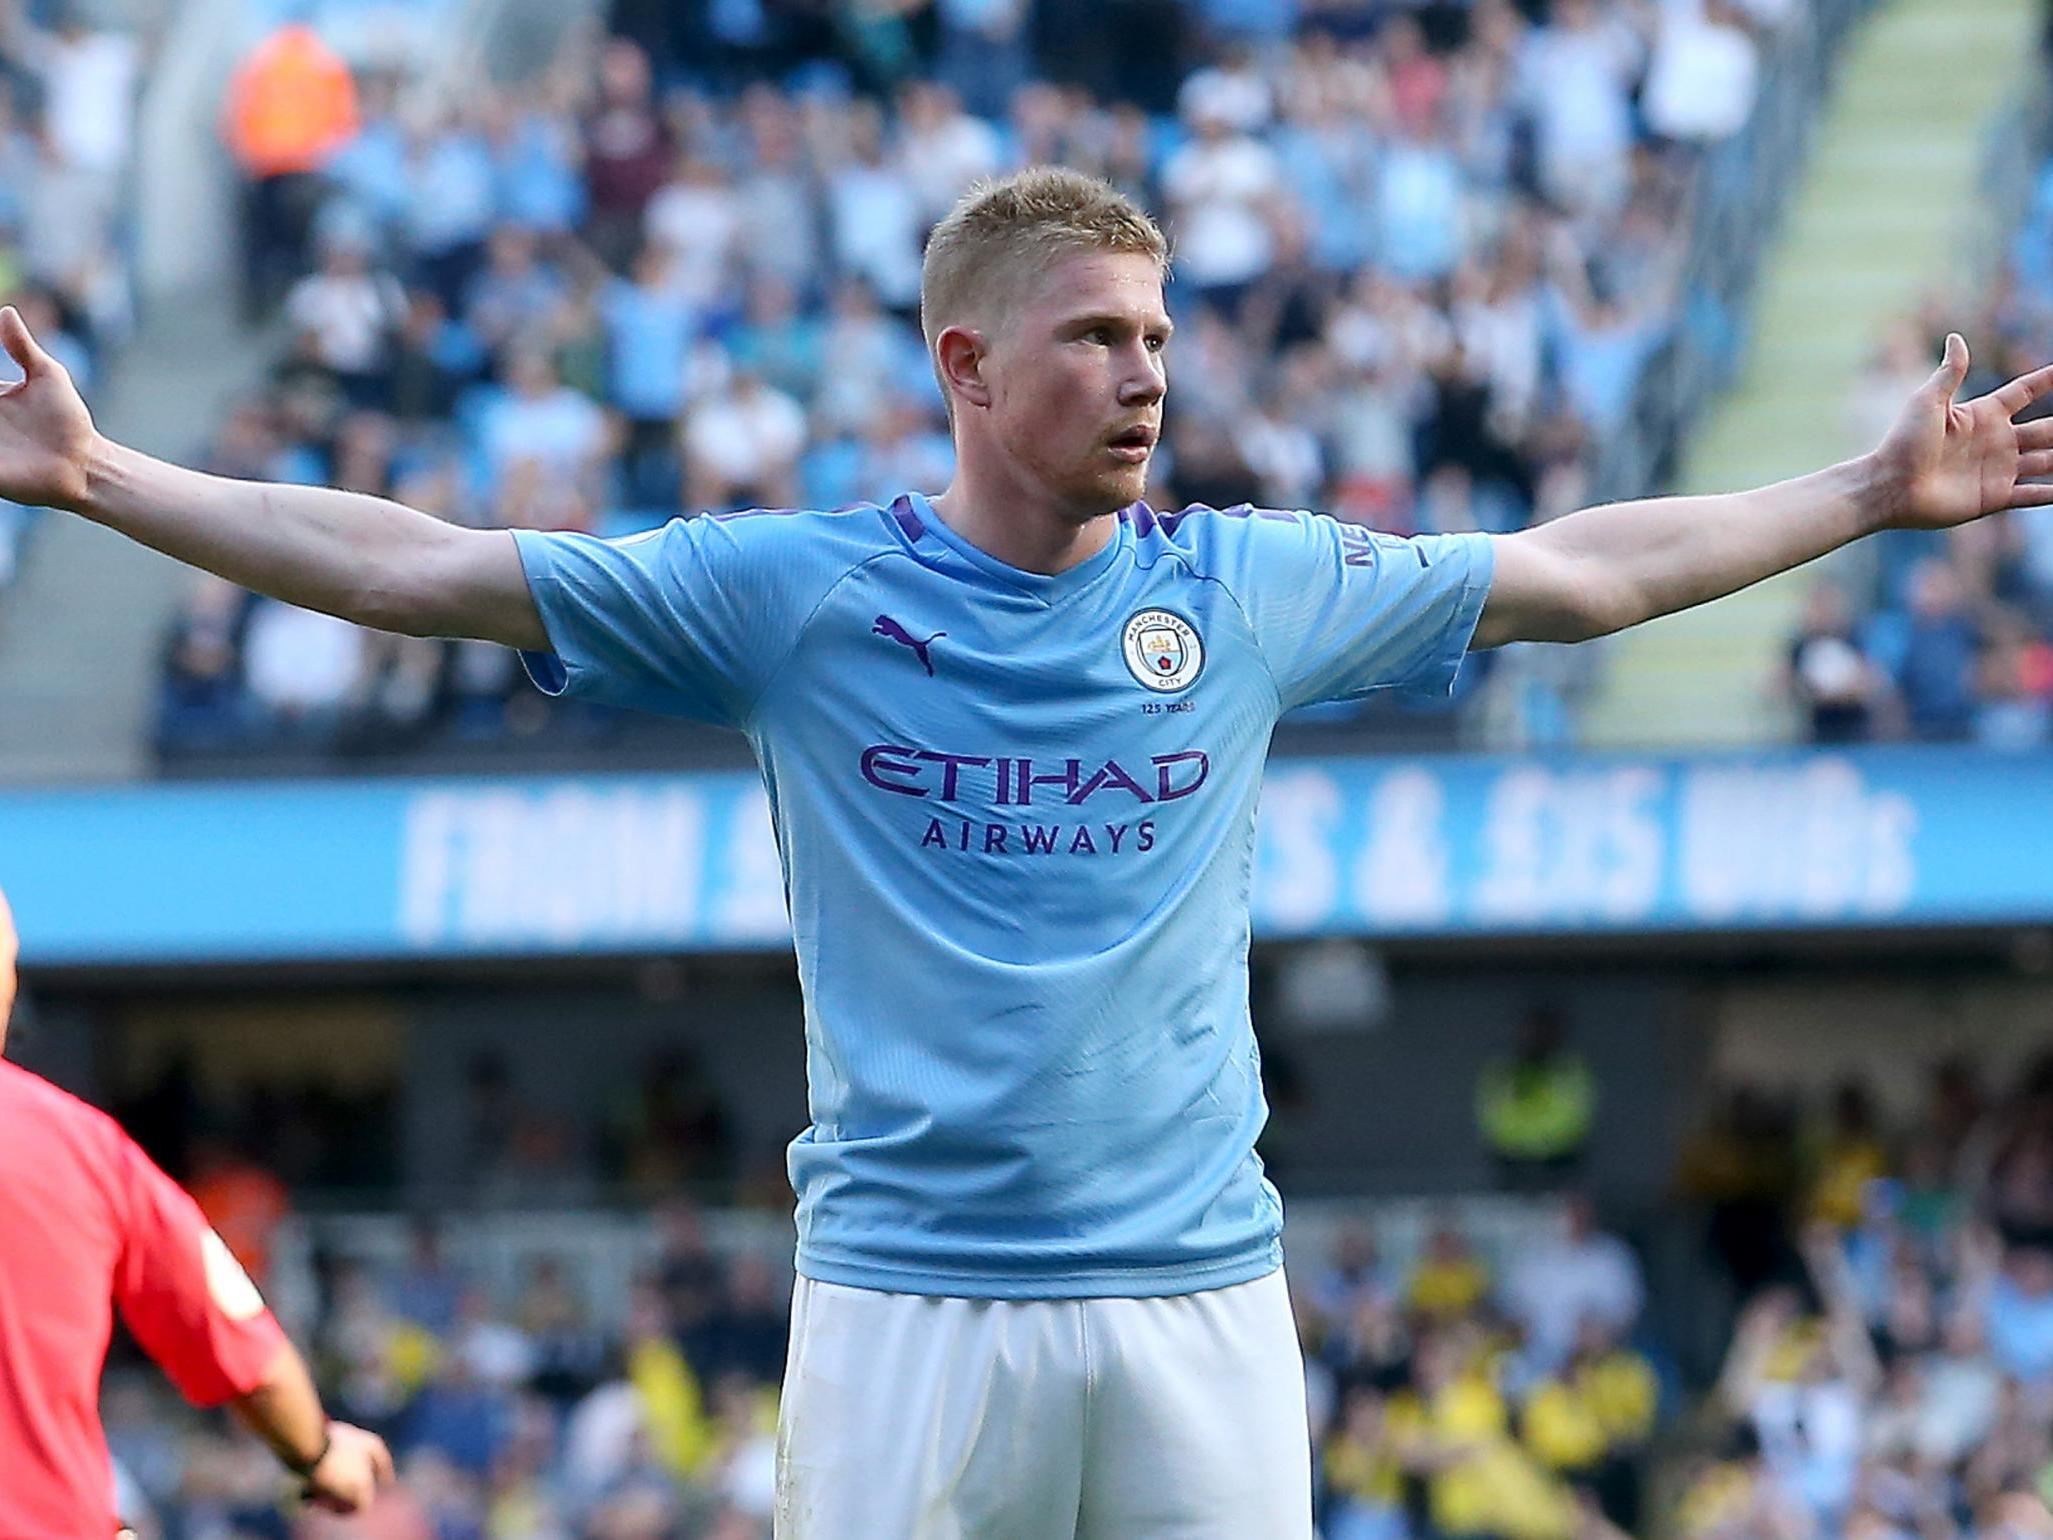 Manchester City: Kevin De Bruyne was already brilliant but is suddenly getting even better